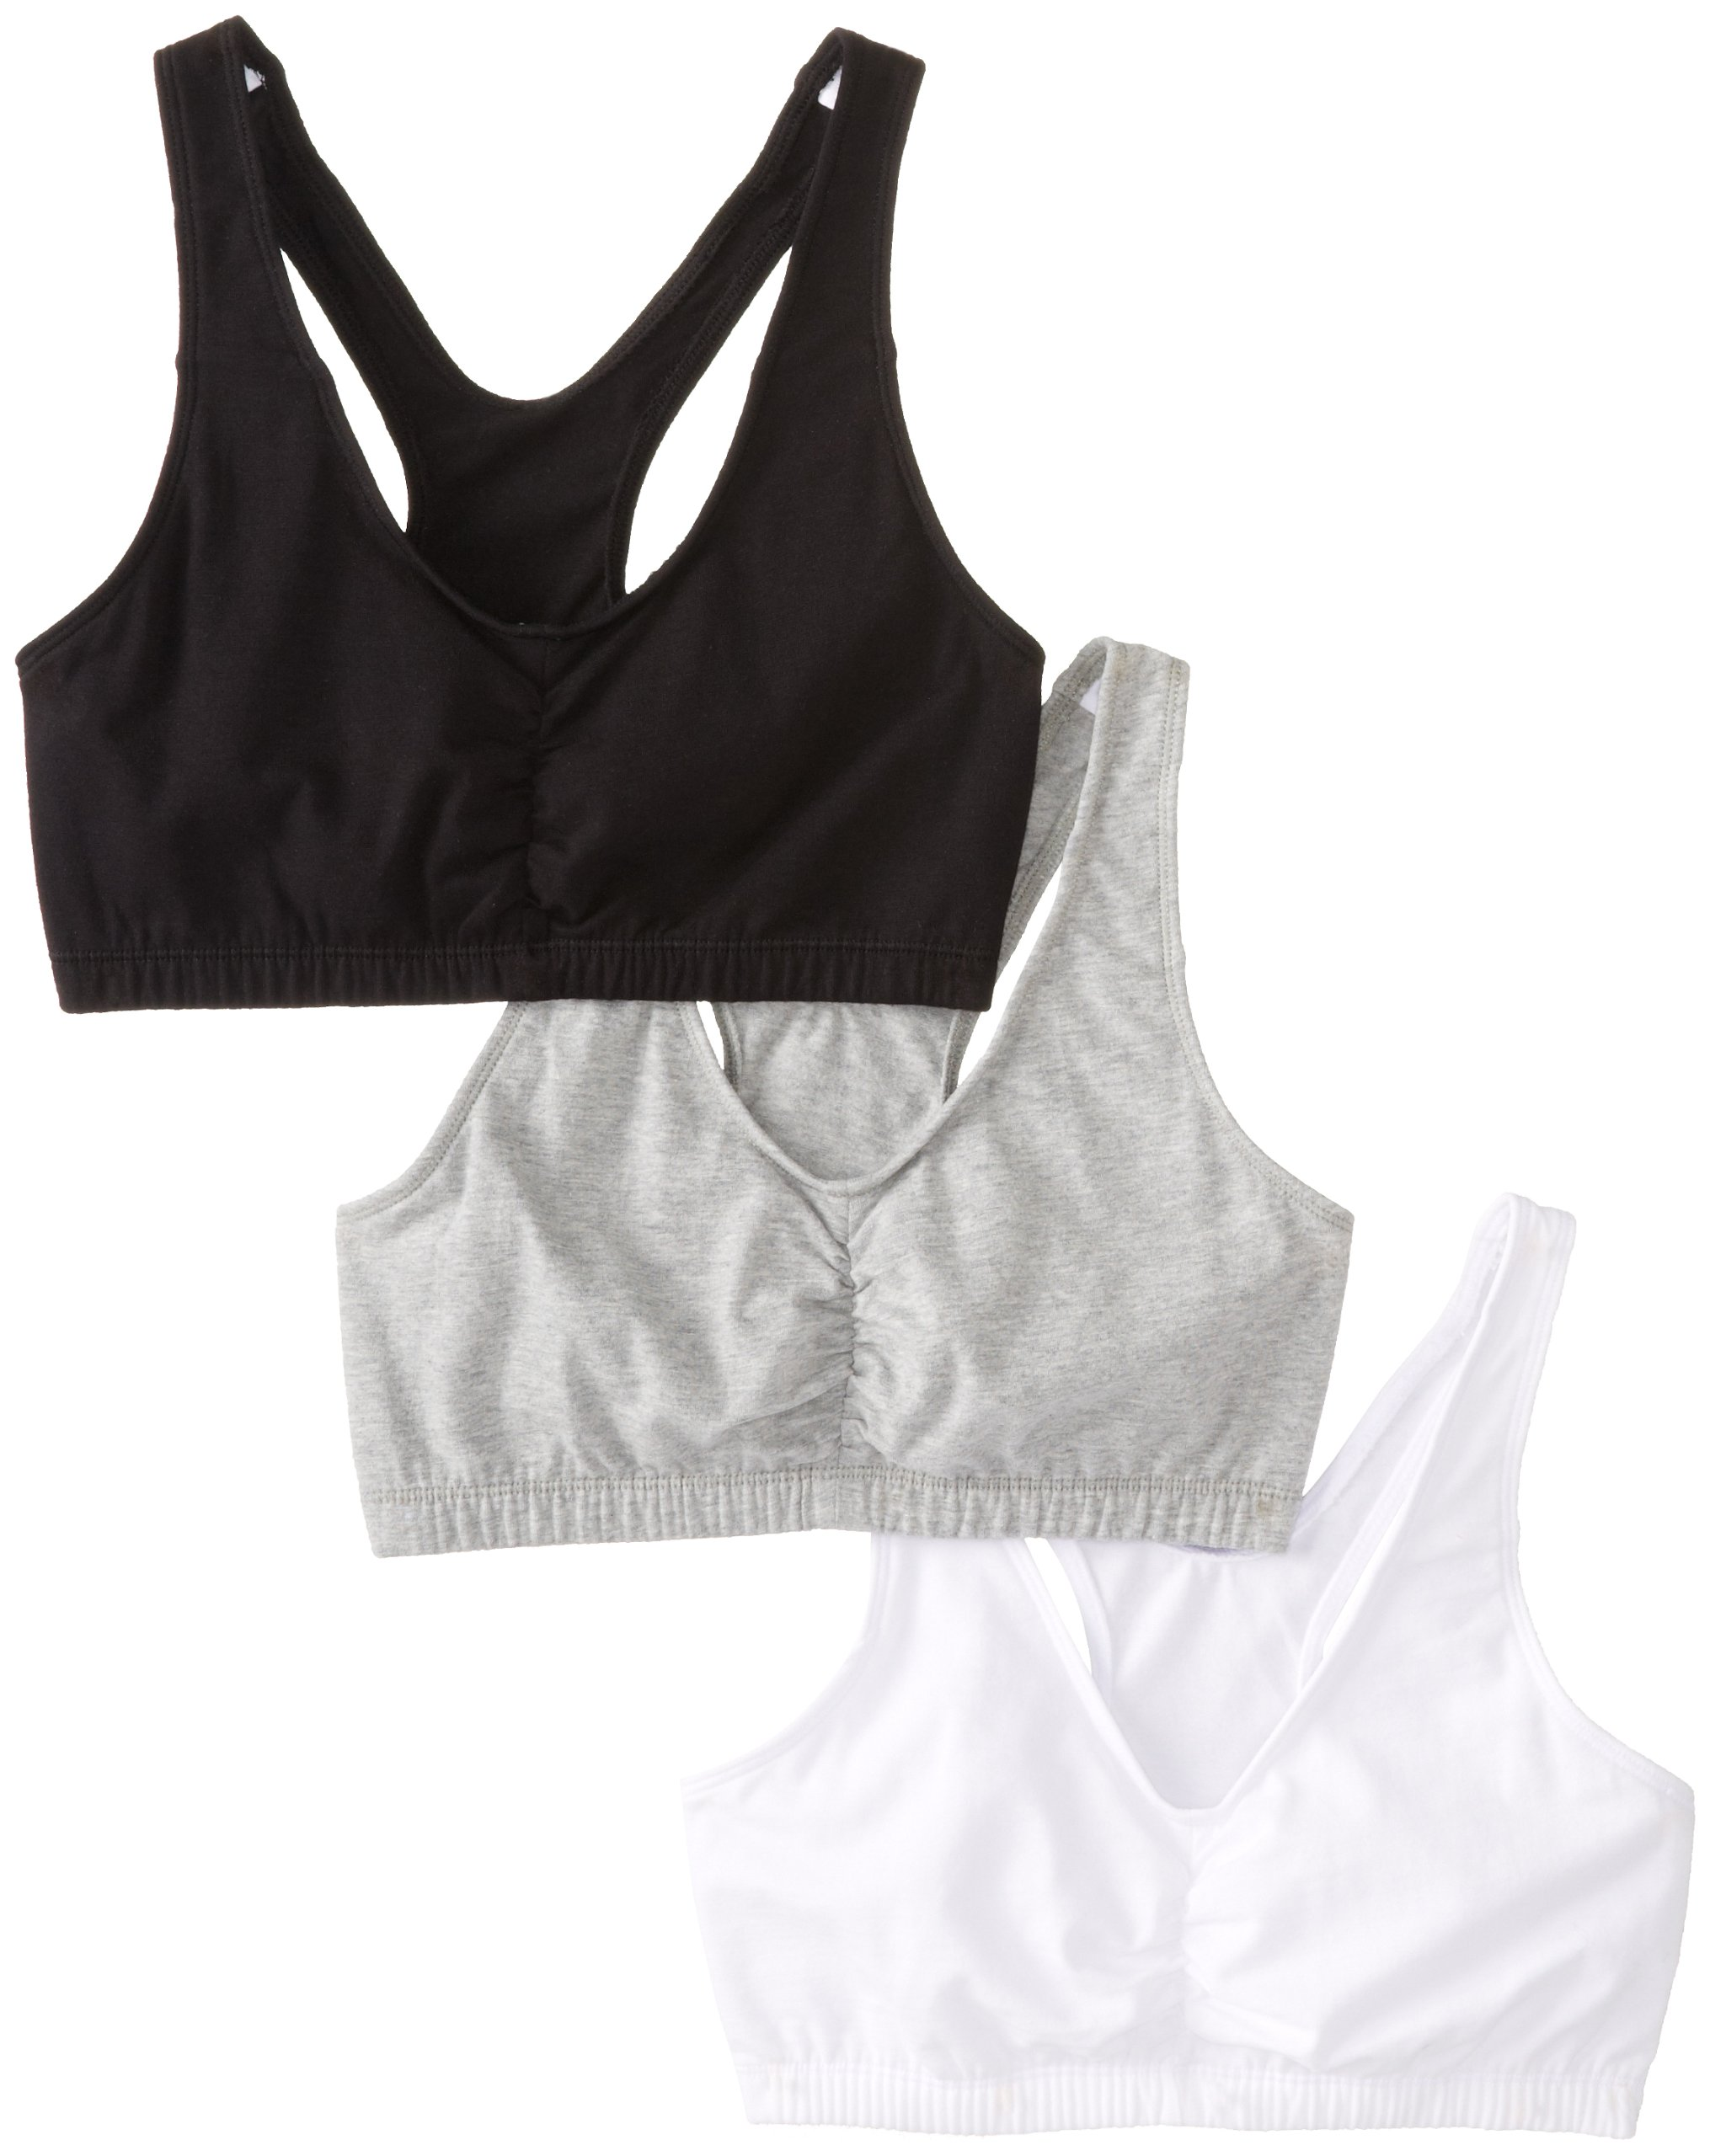 Fruit of the Loom Women's 3-Pack Shirred Front Racerback, White/Black Hue/Heather Grey, Size 42